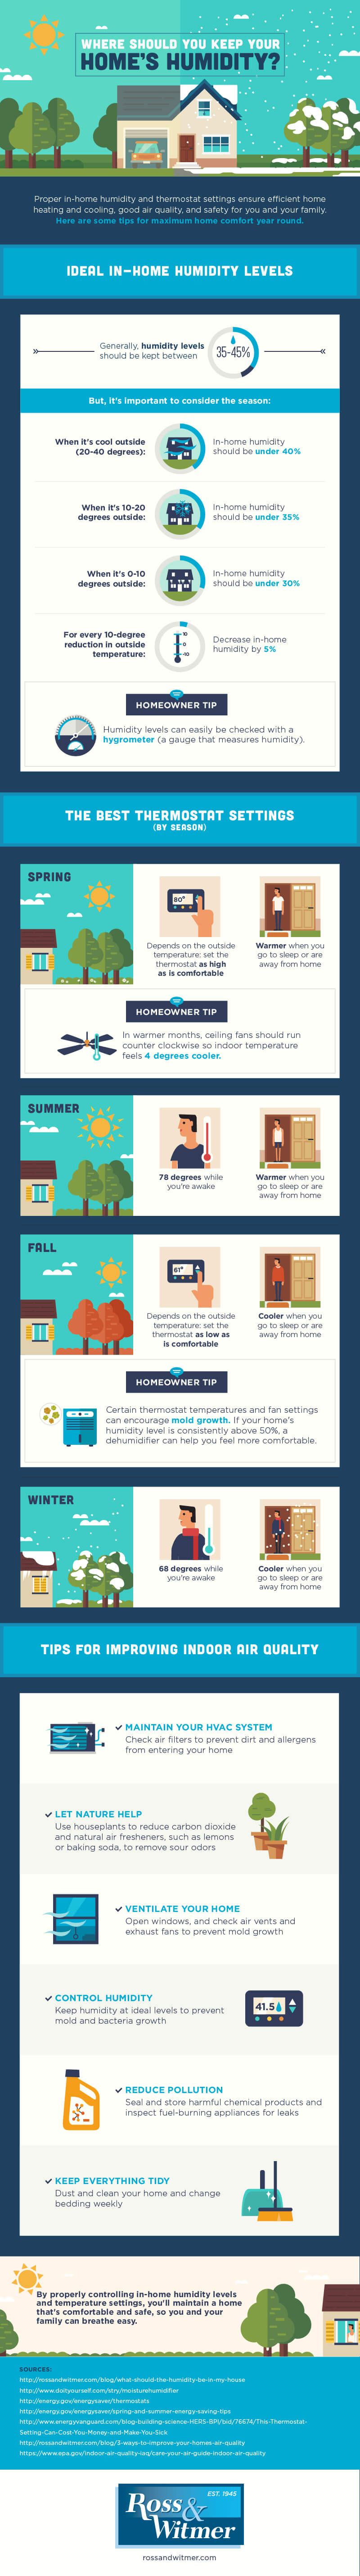 How To Keep Your House Warm - Infographic